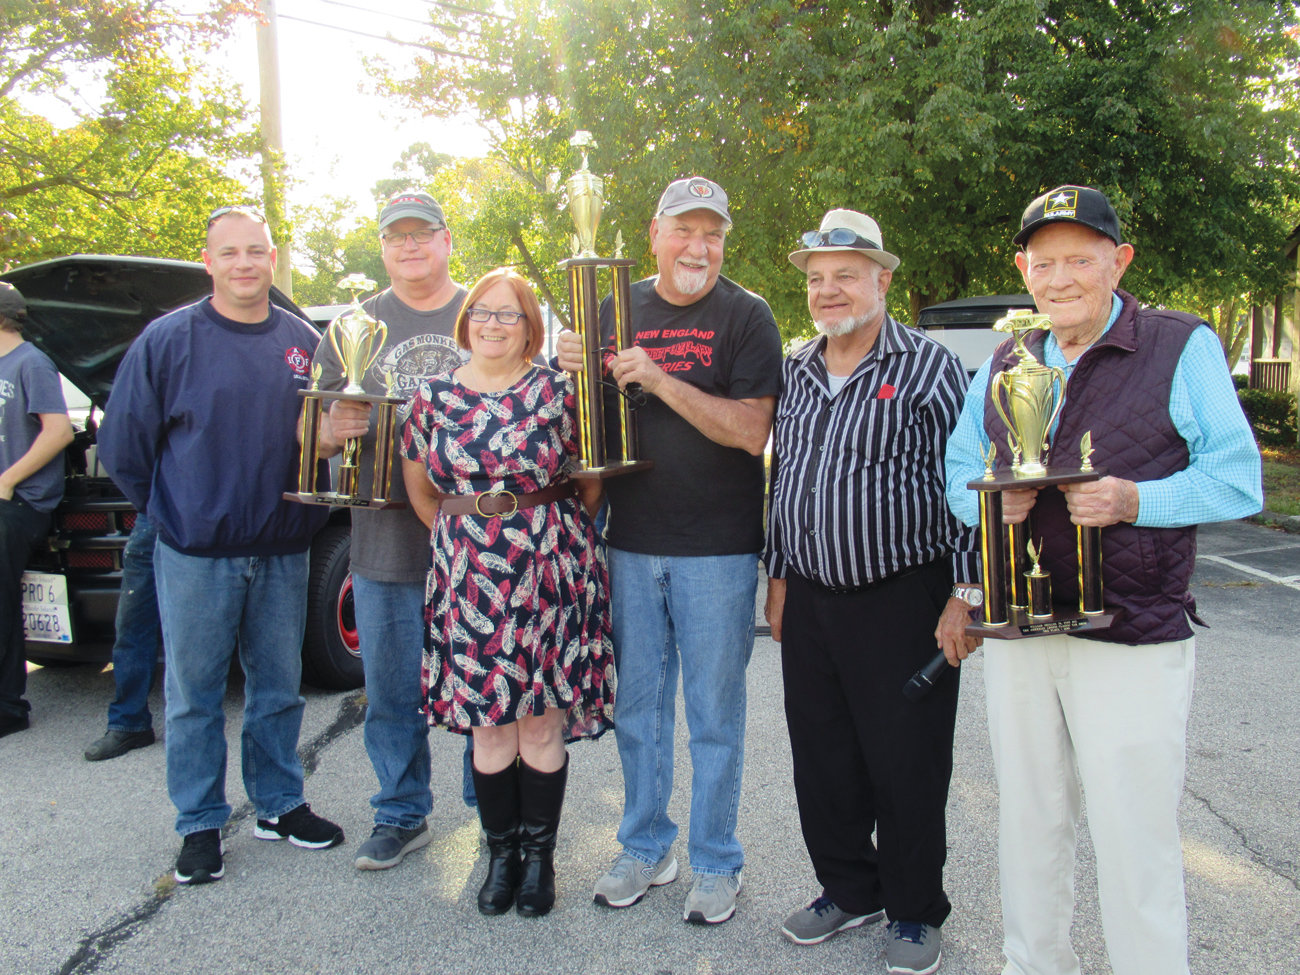 LEGION LINK: Betty Leach (third from left) is all smiles after she presented trophies to the top three winners in Sunday's Shields Post American Legion Car Show. The group includes from left: Troy Zillick, second place winner Bob Ray, first place winner Richard Cicchetti, Gene Cahoon and third place winner Joe Flamand.